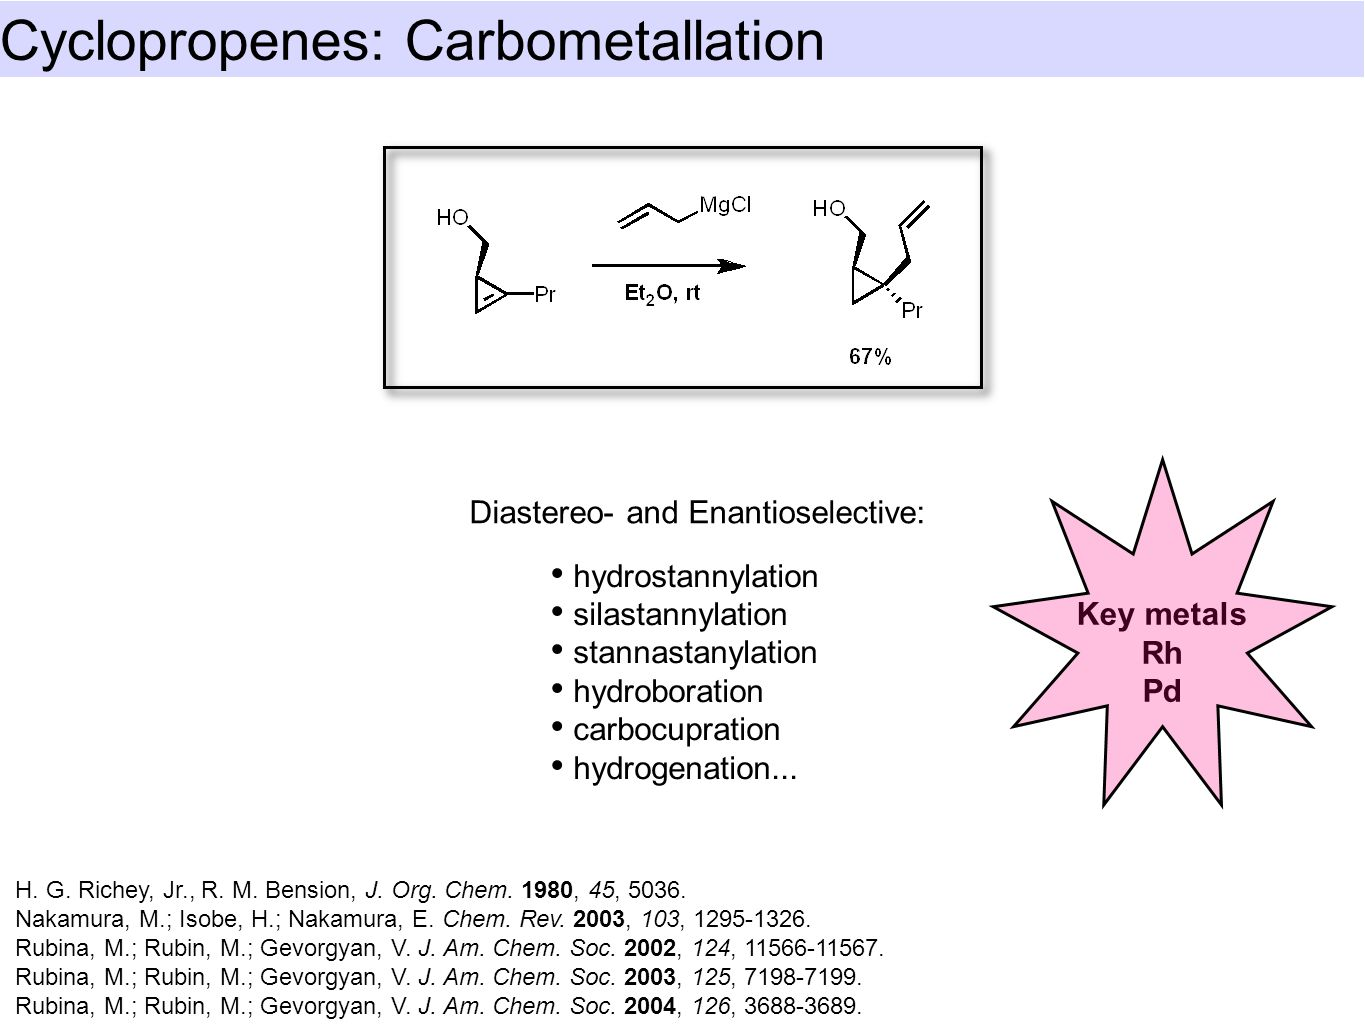 Cyclopropenes: Carbometallation Liao, L.-a.; Fox, J. M. J. Am. Chem. Soc. 2002, 124, 14322-14323.